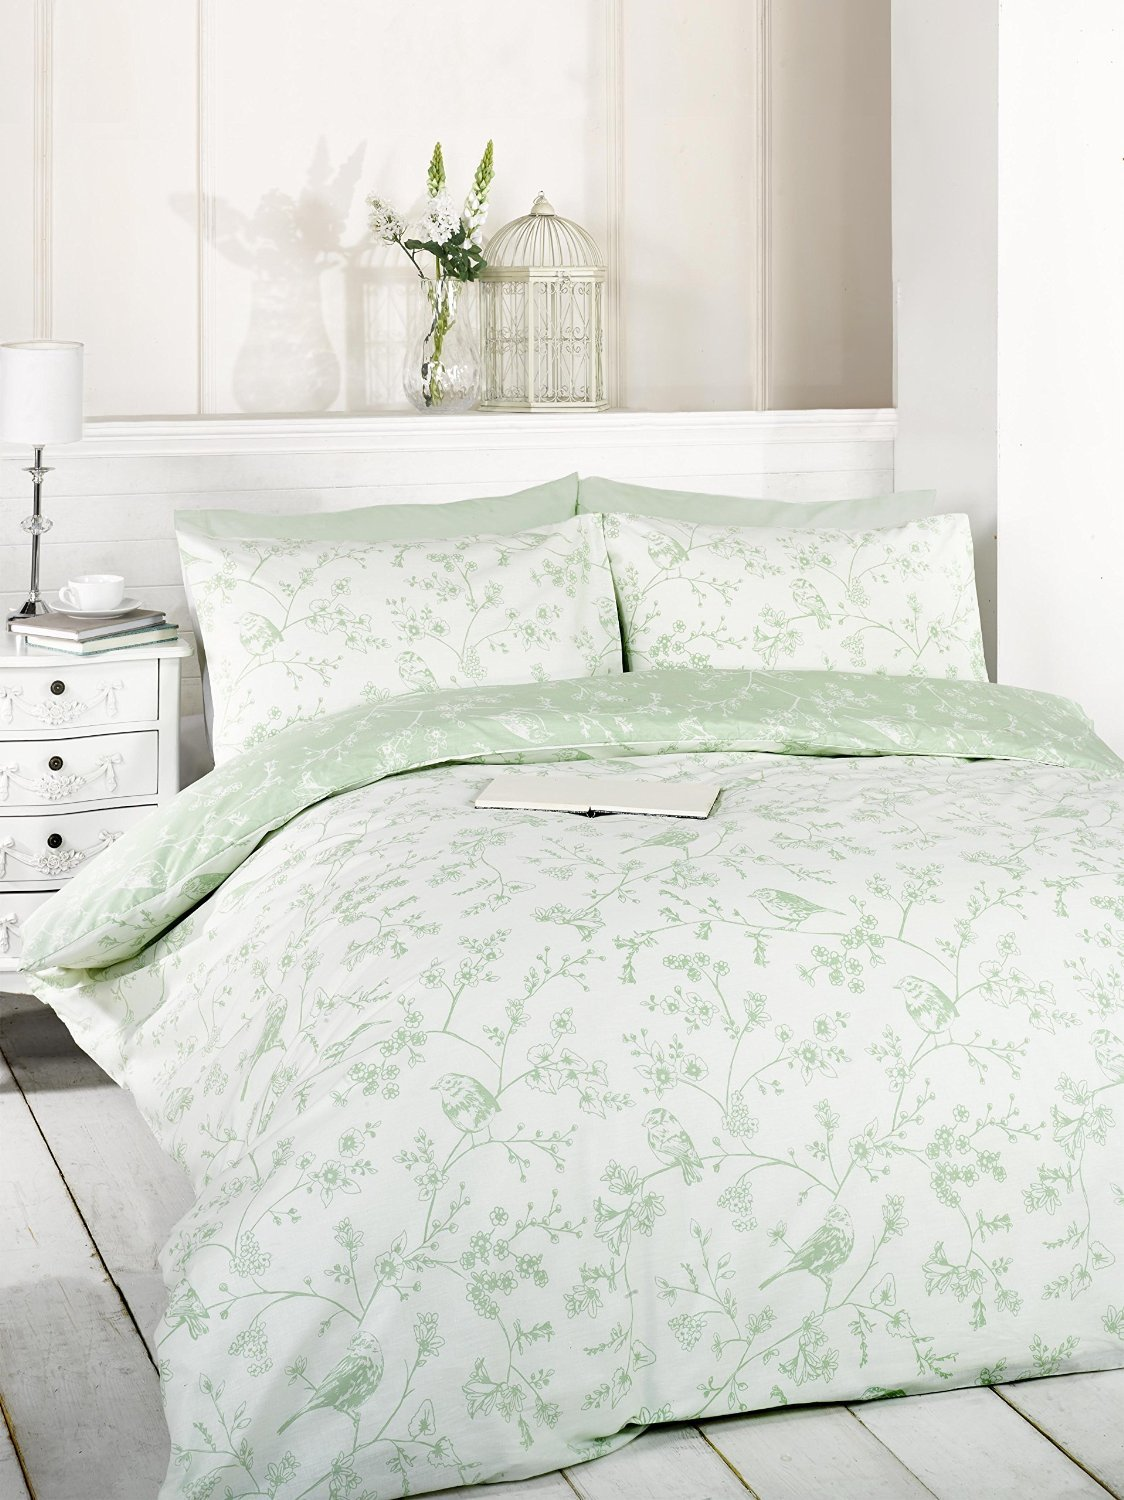 set green interior full duvet images nicole cover miller design on king best for sage architecture and queen amazing floral miraculous impressive paisley